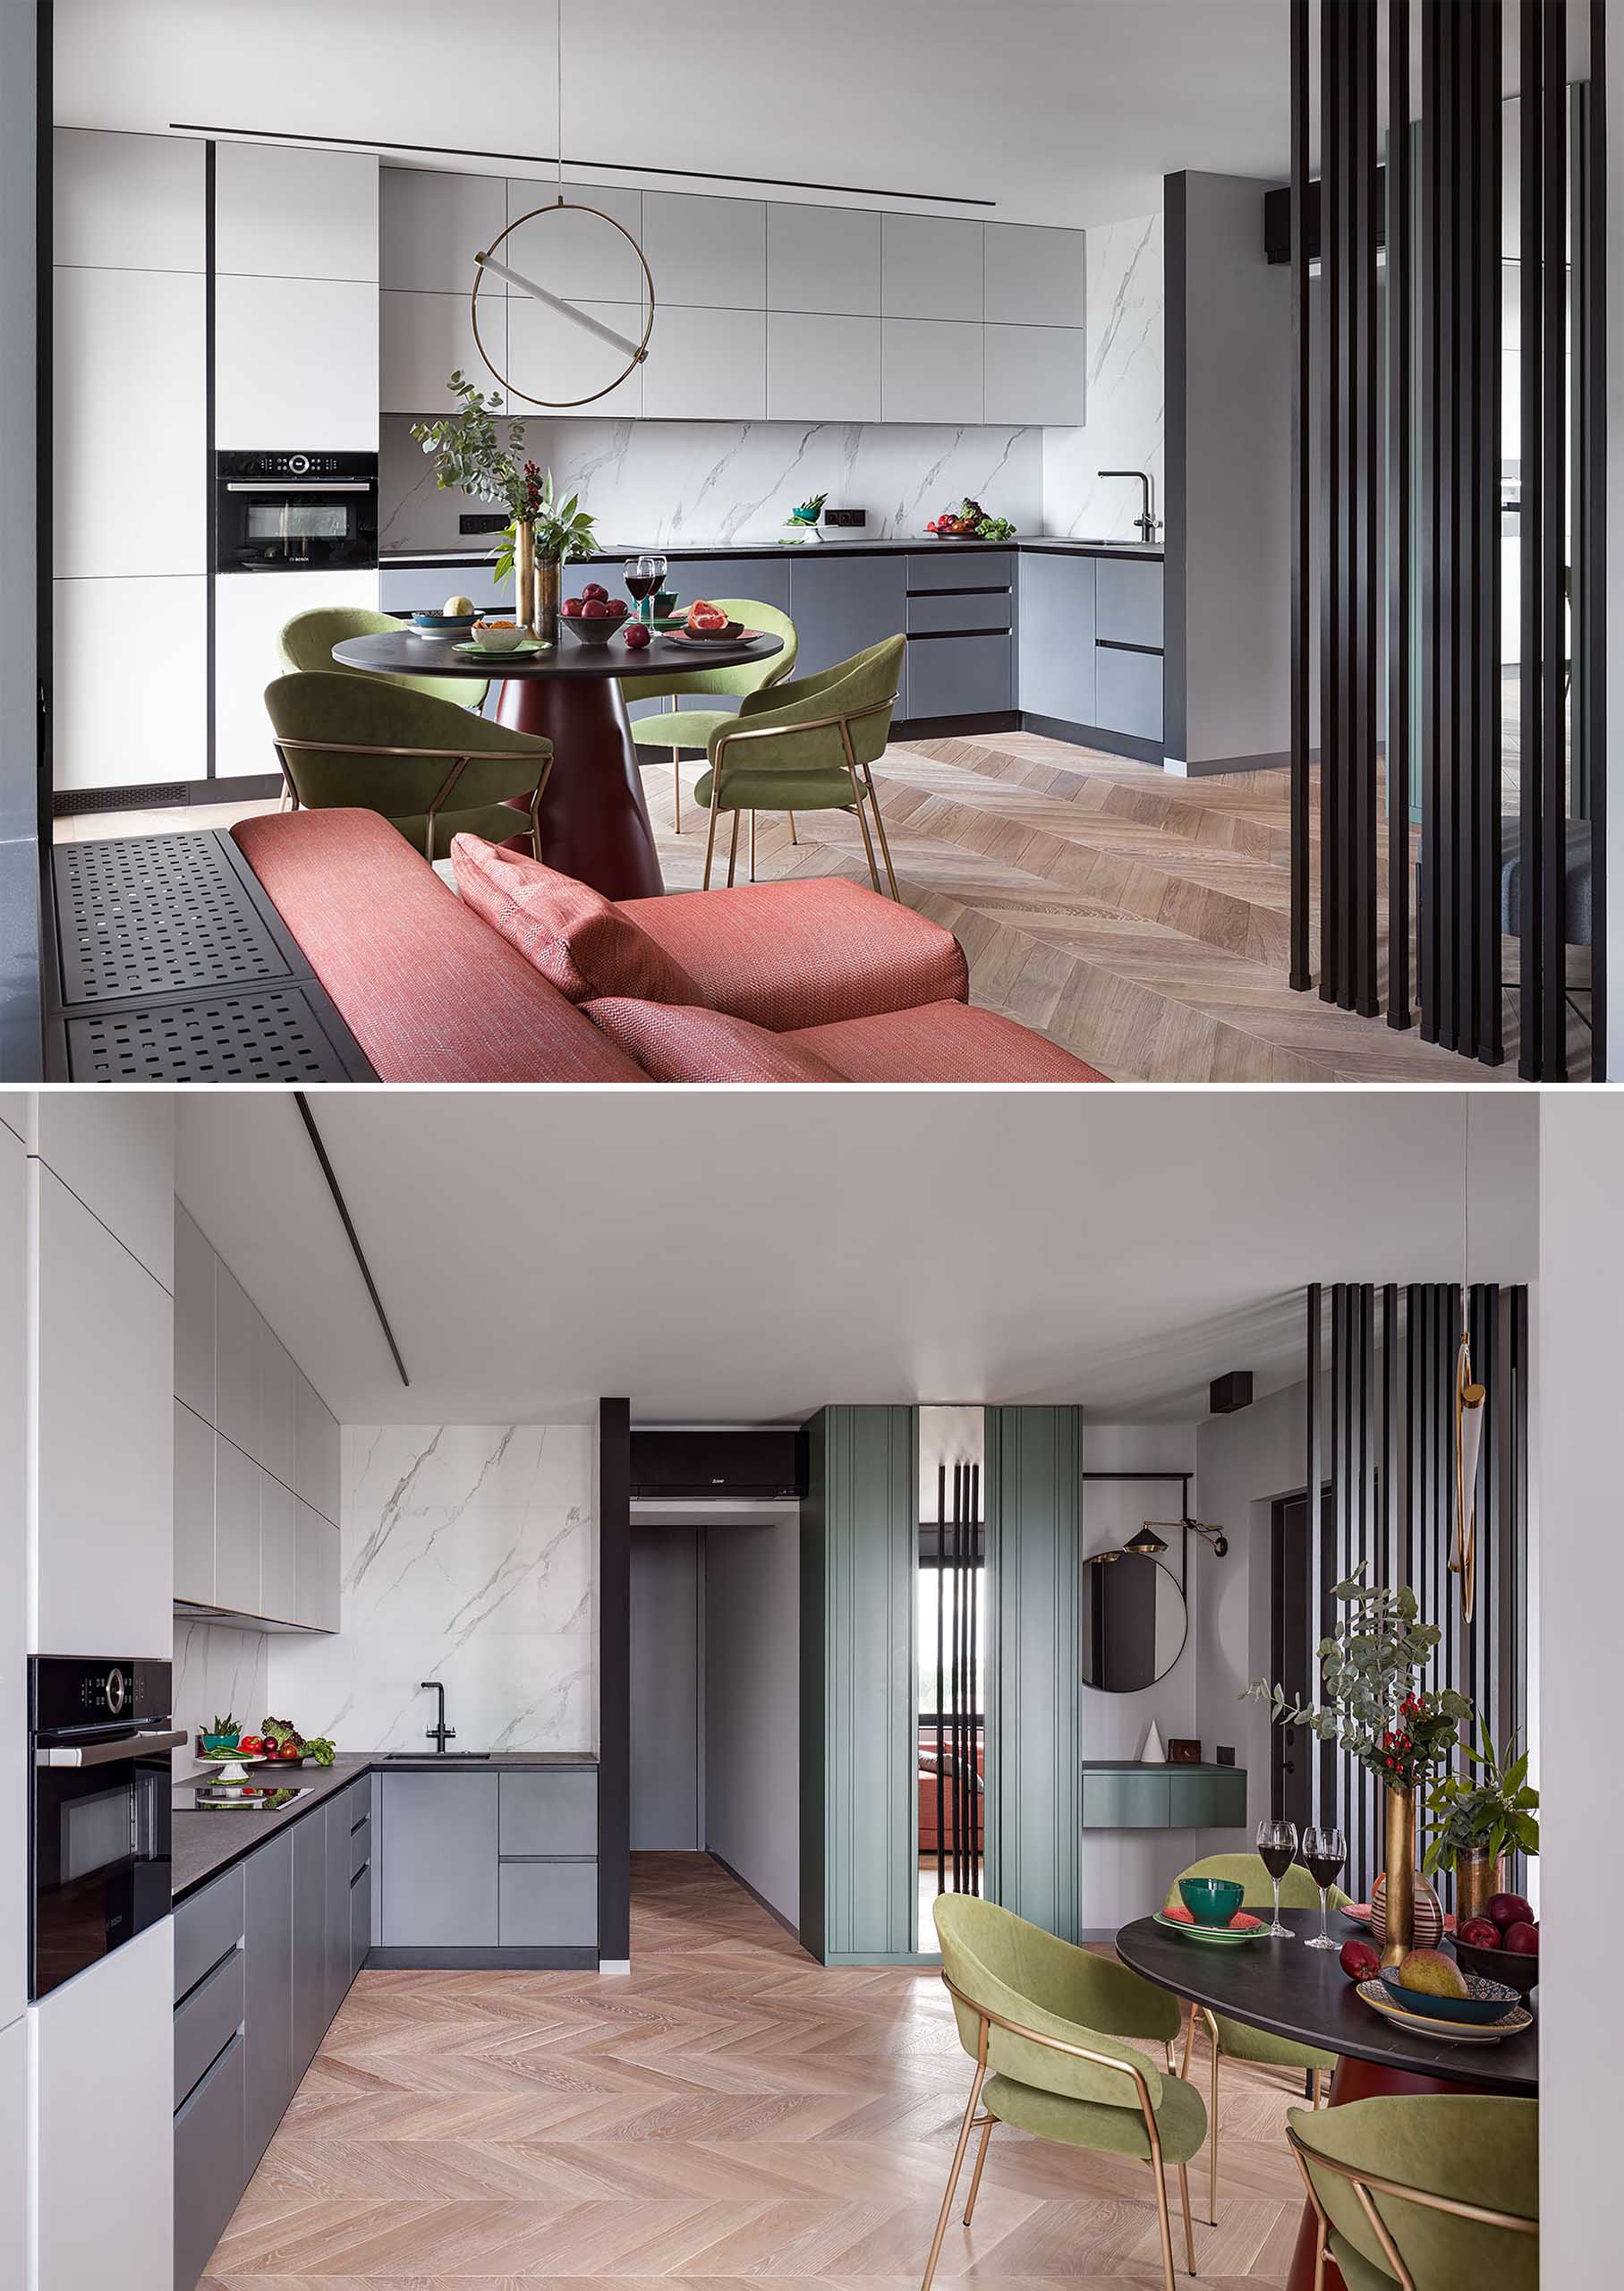 Filling up an entire wall, the linear kitchen has an integrated fridge, and hardware free cabinets. The color scheme is also reminiscent of the color scheme found in the bedroom, with dark lower cabinets and light upper cabinets.